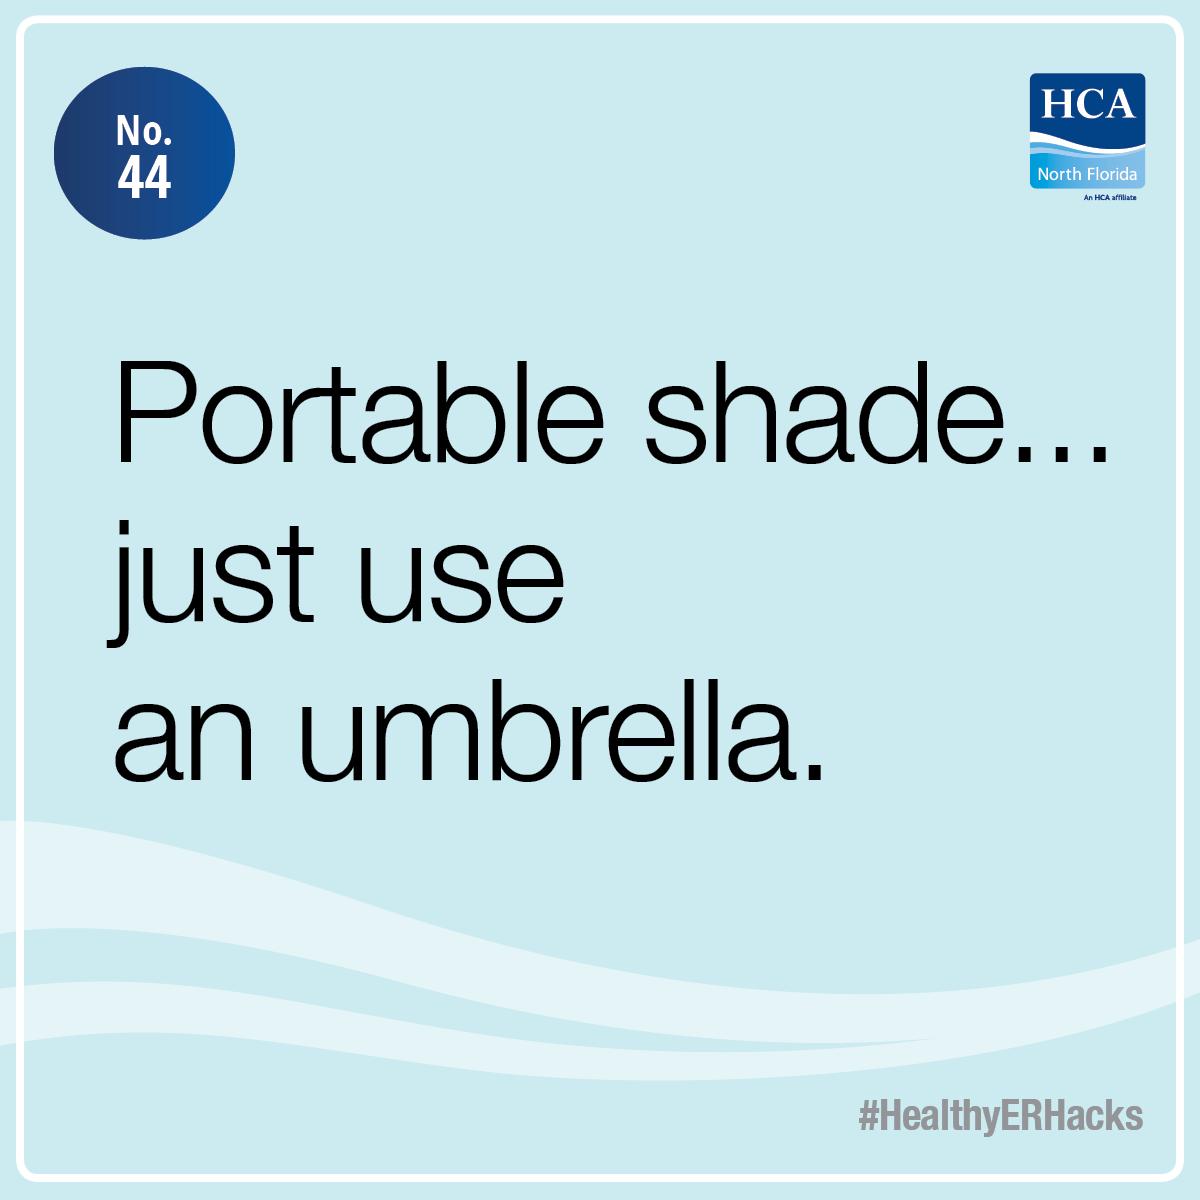 Temperatures under the shade can be 10-15 degrees lower than in direct sunlight! #HealthyERHacks